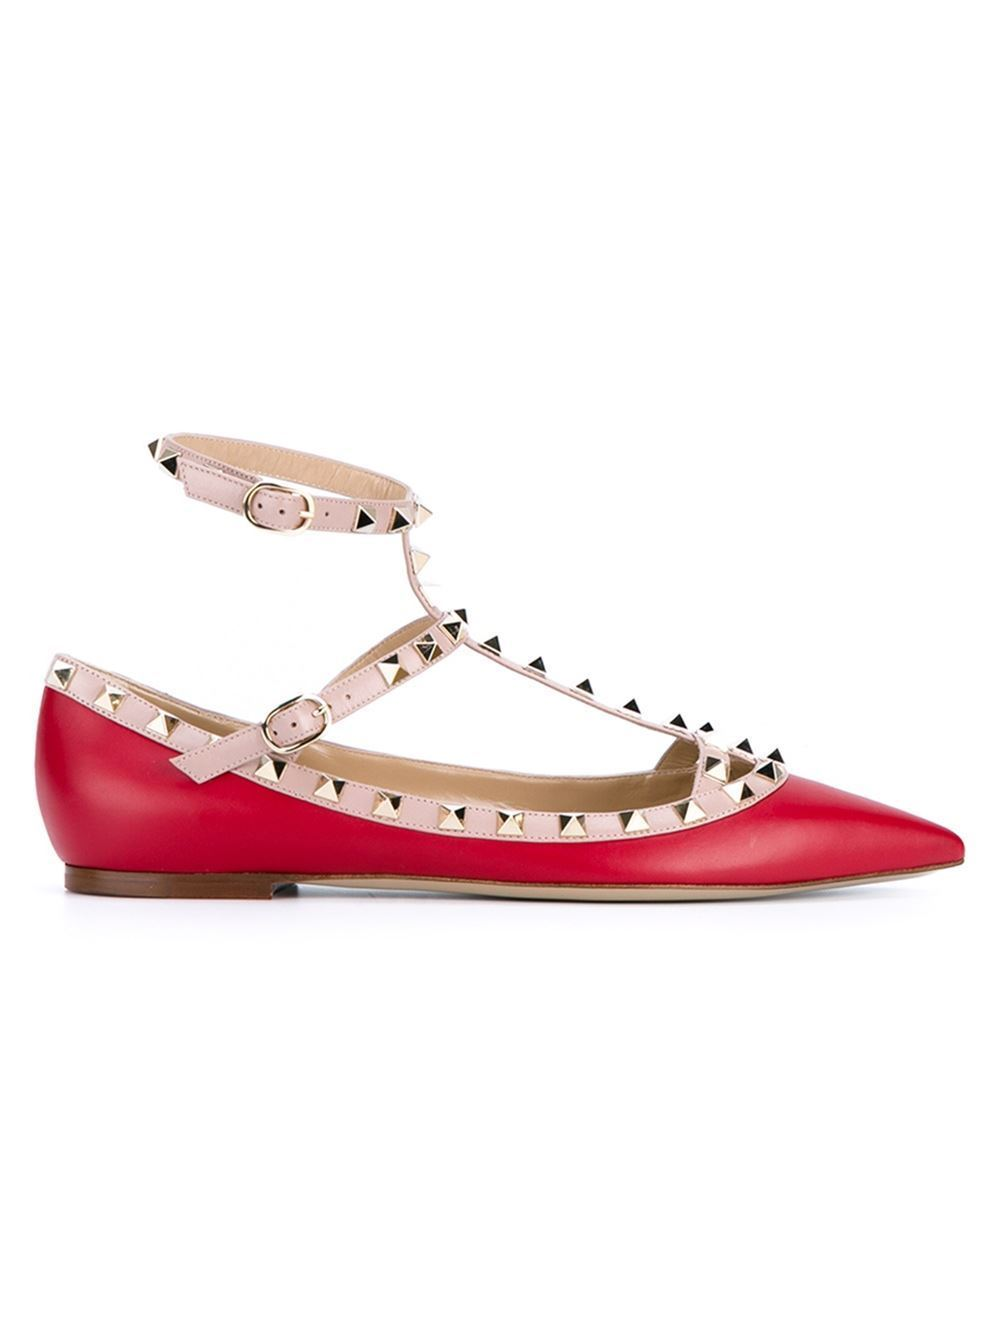 Red shoes VALENTINO rock Stud ballerina flat - BUYMA